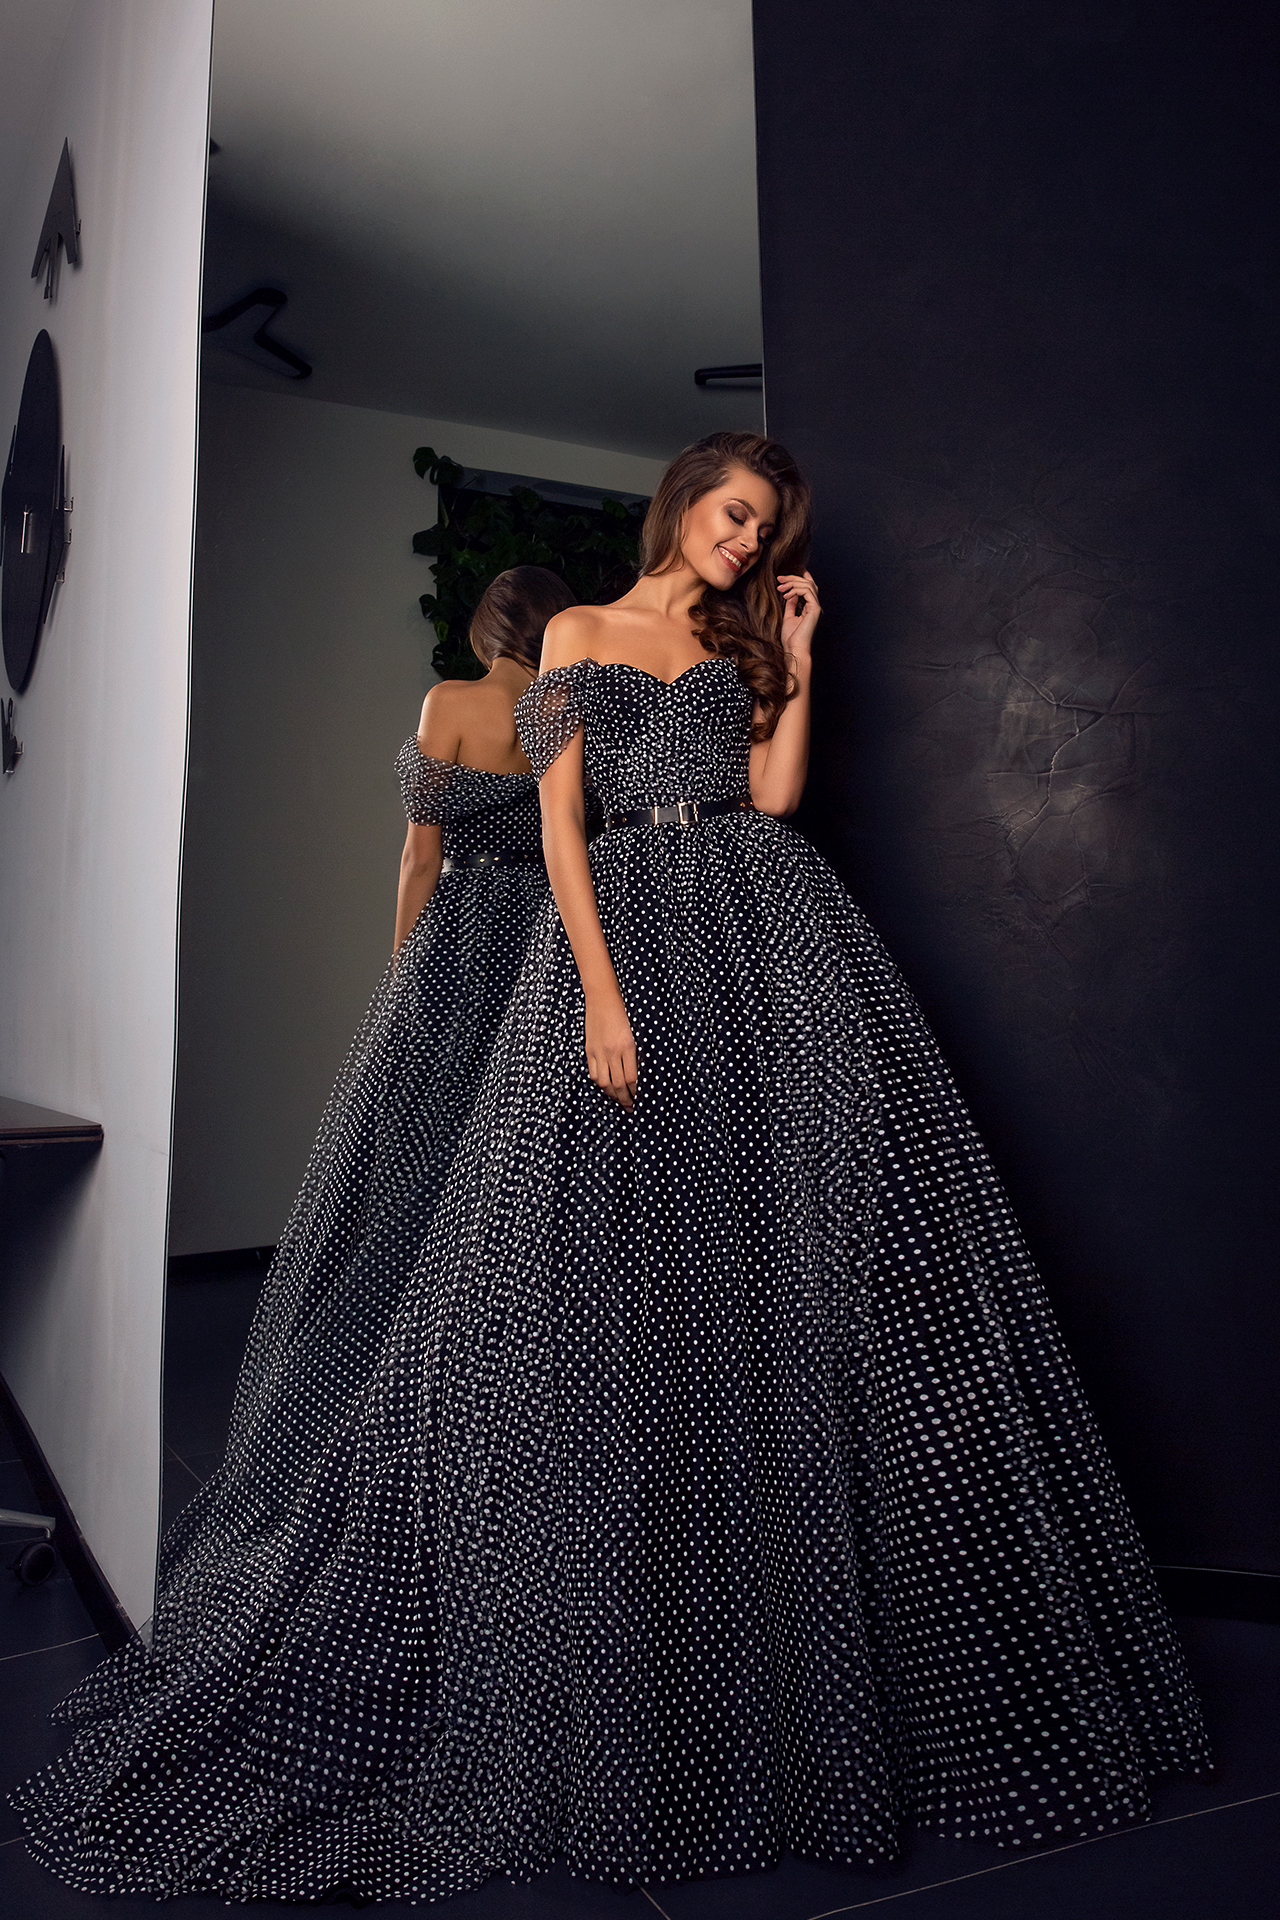 Evening Dresses 1542 Silhouette  A Line  Color  Black  Neckline  Sweetheart  Sleeves  Wide straps  Off the Shoulder Sleeves